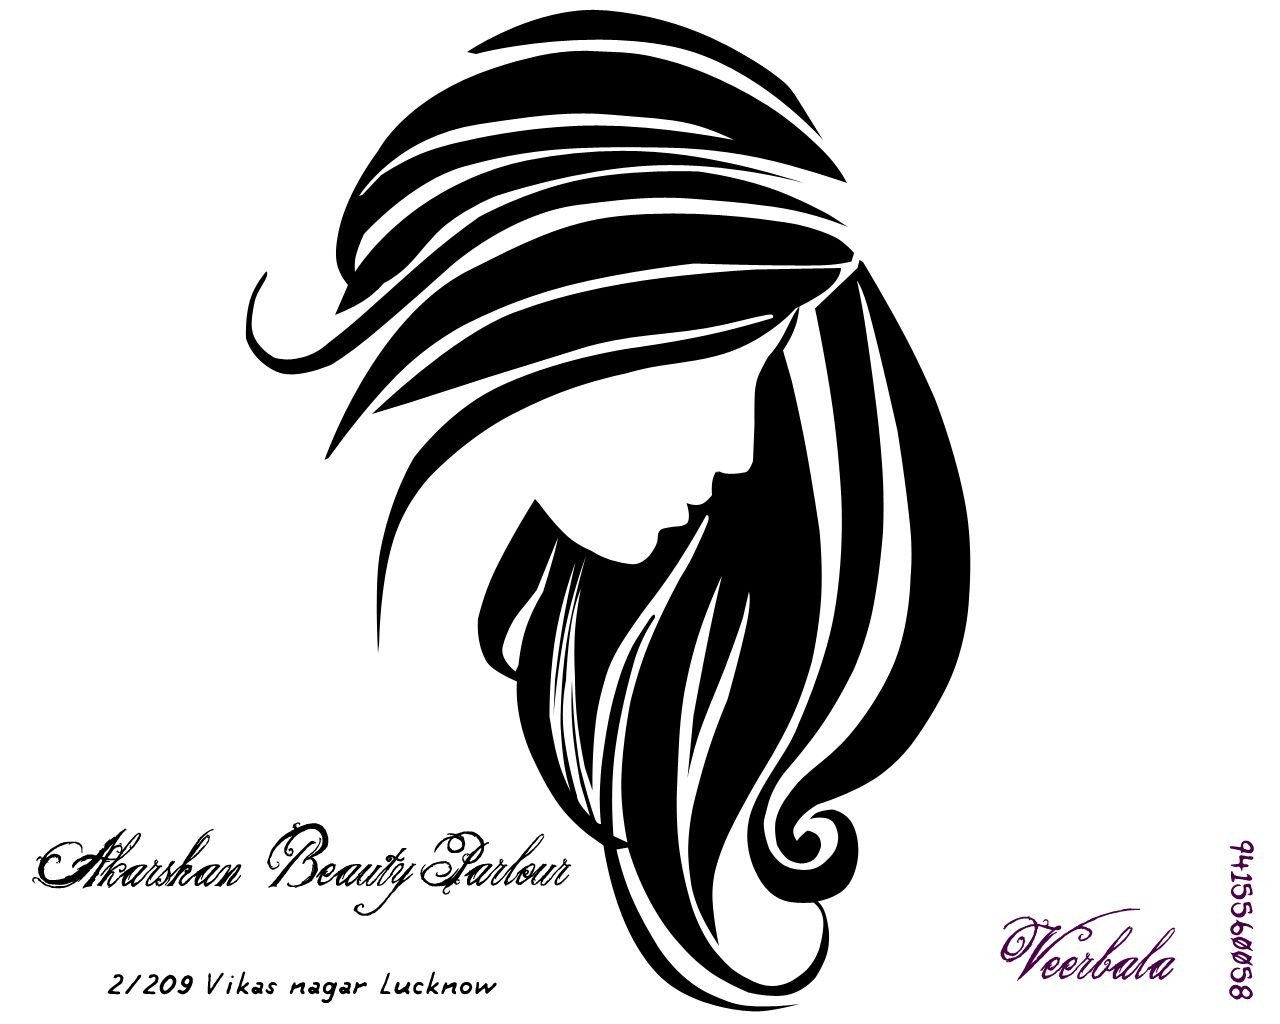 Beauty parlour images clipart jpg royalty free stock Akarshan Beauty Parlour | Hair Salons in 2019 | Hair icon, Hair ... jpg royalty free stock